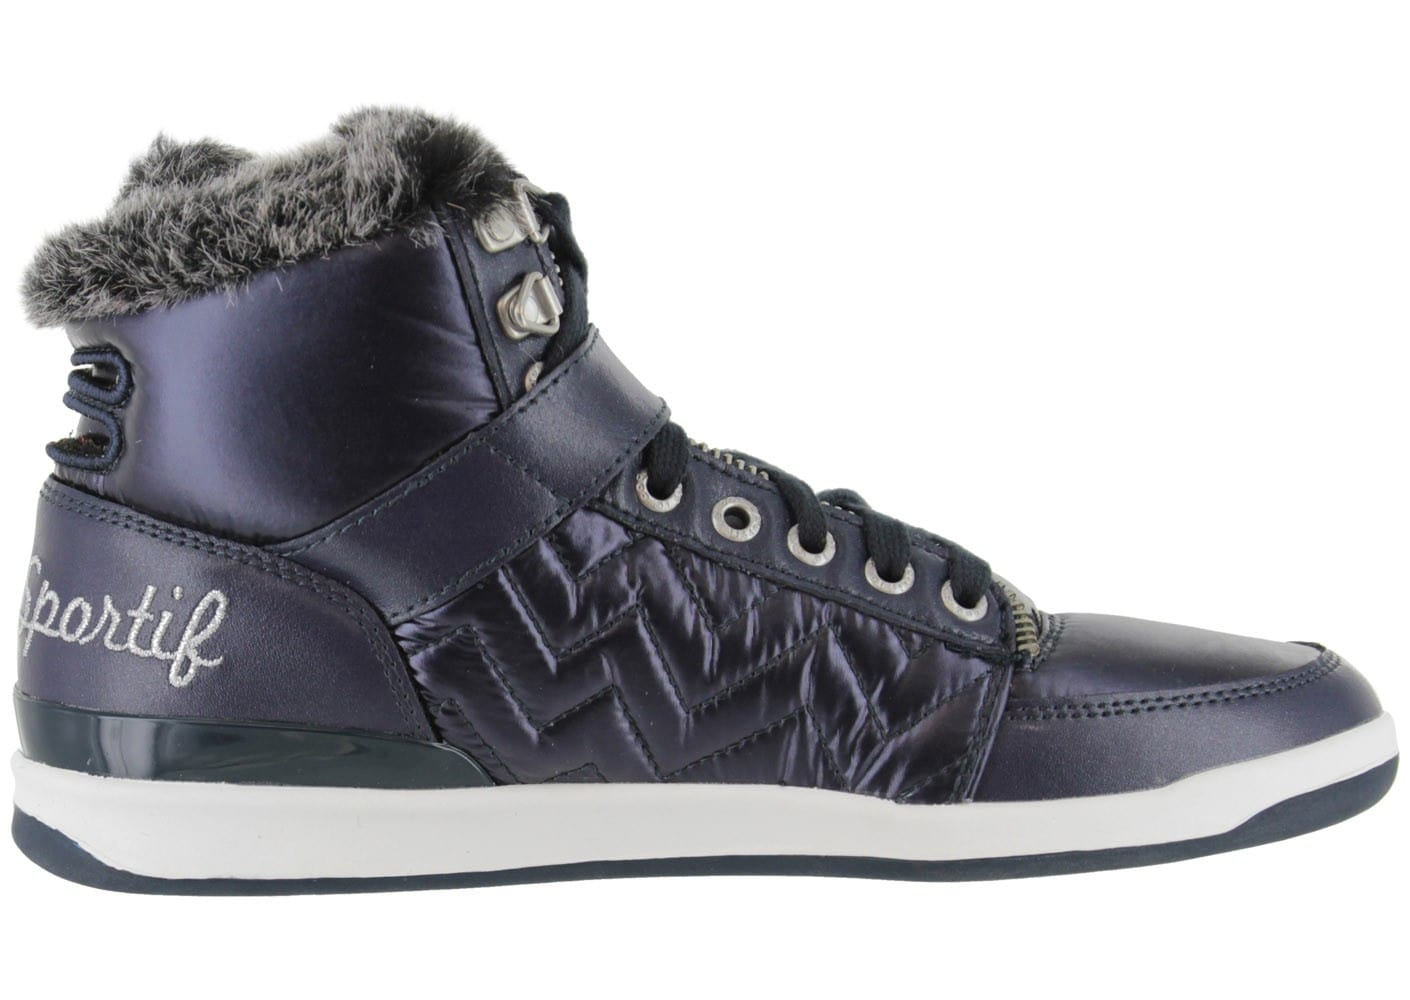 le coq sportif diamond bleu marine chaussures chaussures. Black Bedroom Furniture Sets. Home Design Ideas